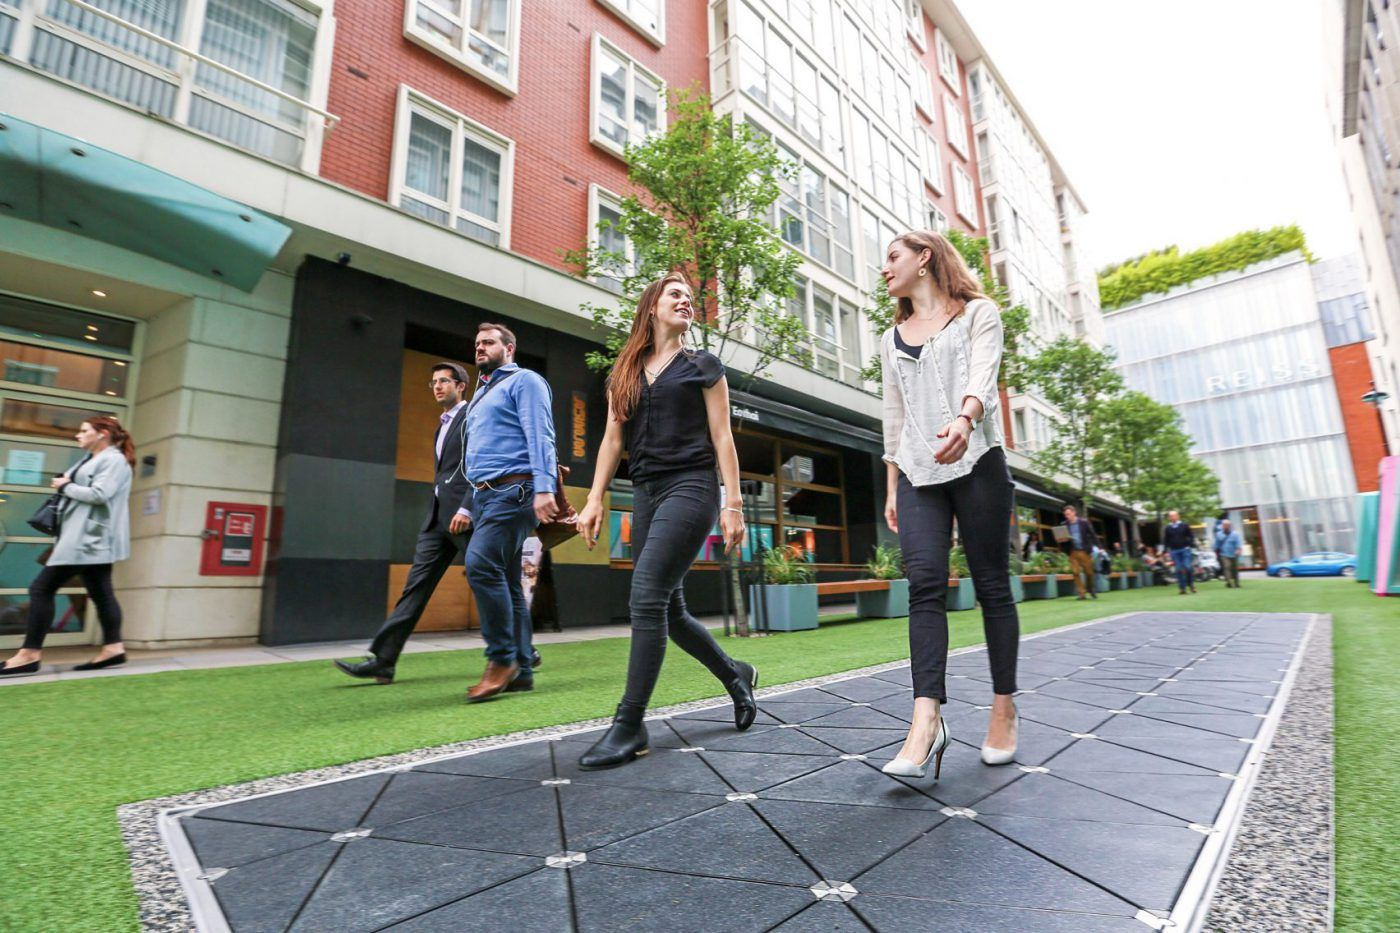 These Floor Tiles Can Power Public Lighting While You Walk On Them Smart City Energy Harvesting Interactive Architecture